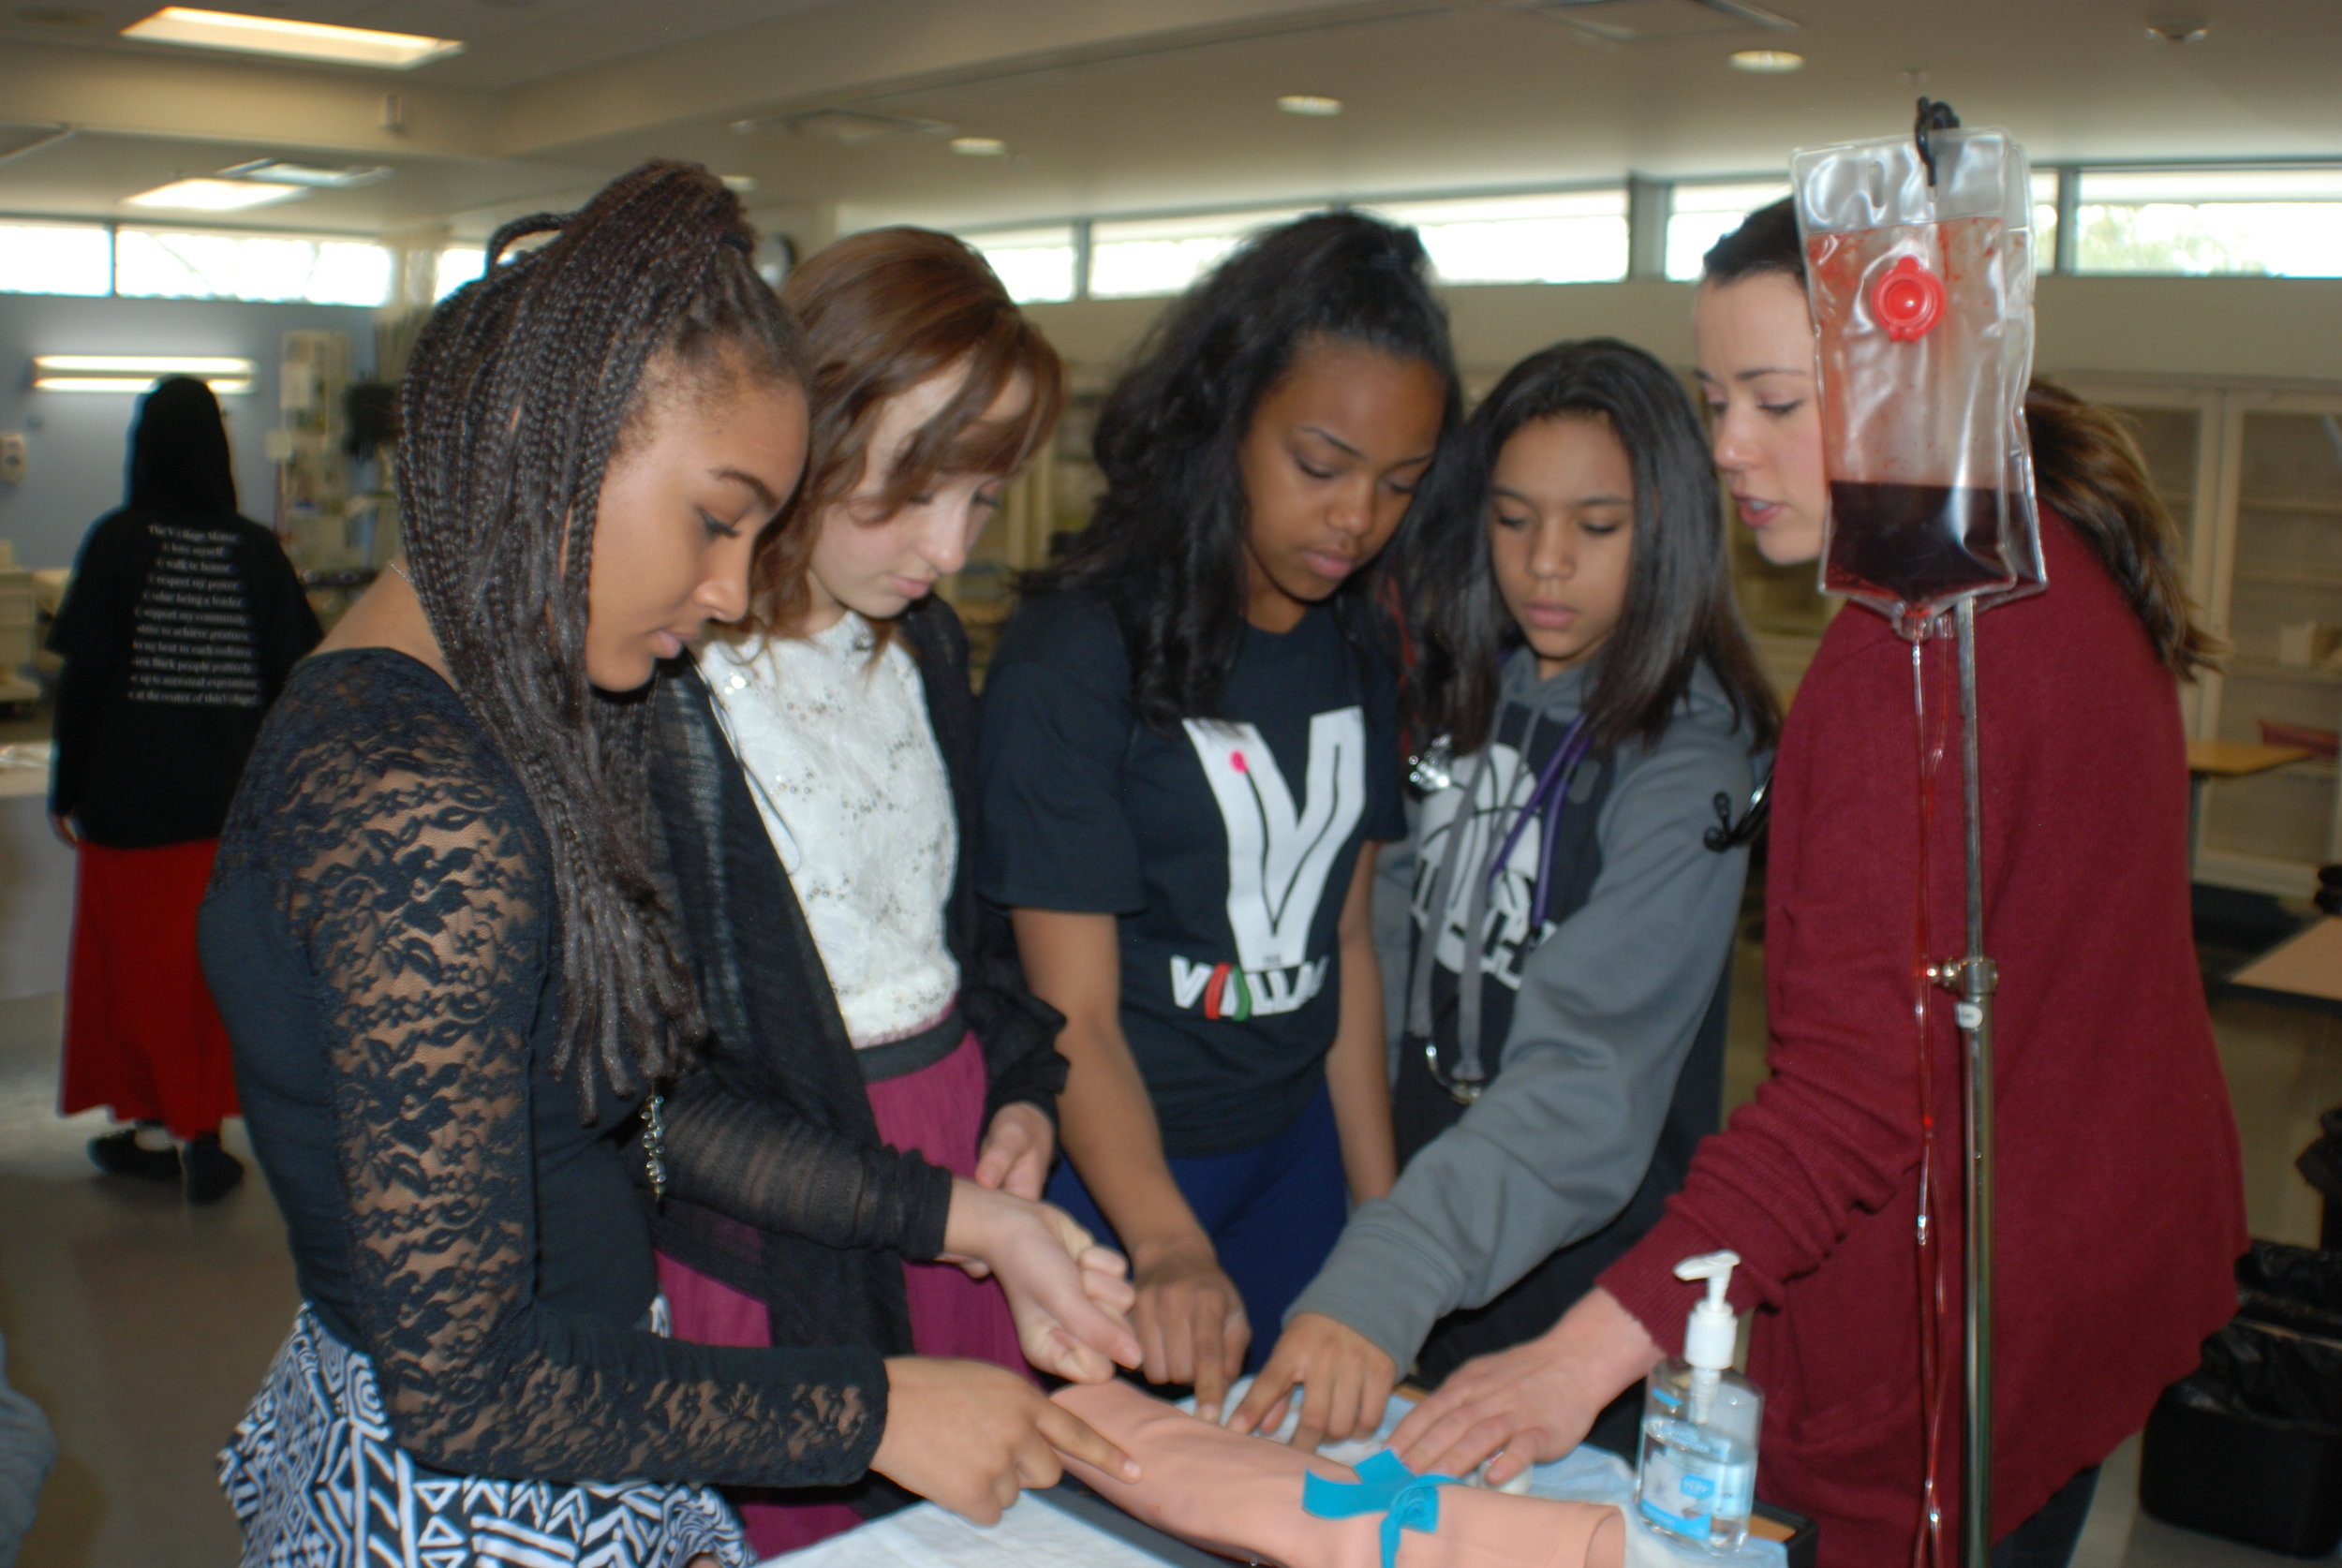 The V(i)llage™ Student participants learning about internal medicine during the Medicine U (2016) event at the University of Utah.